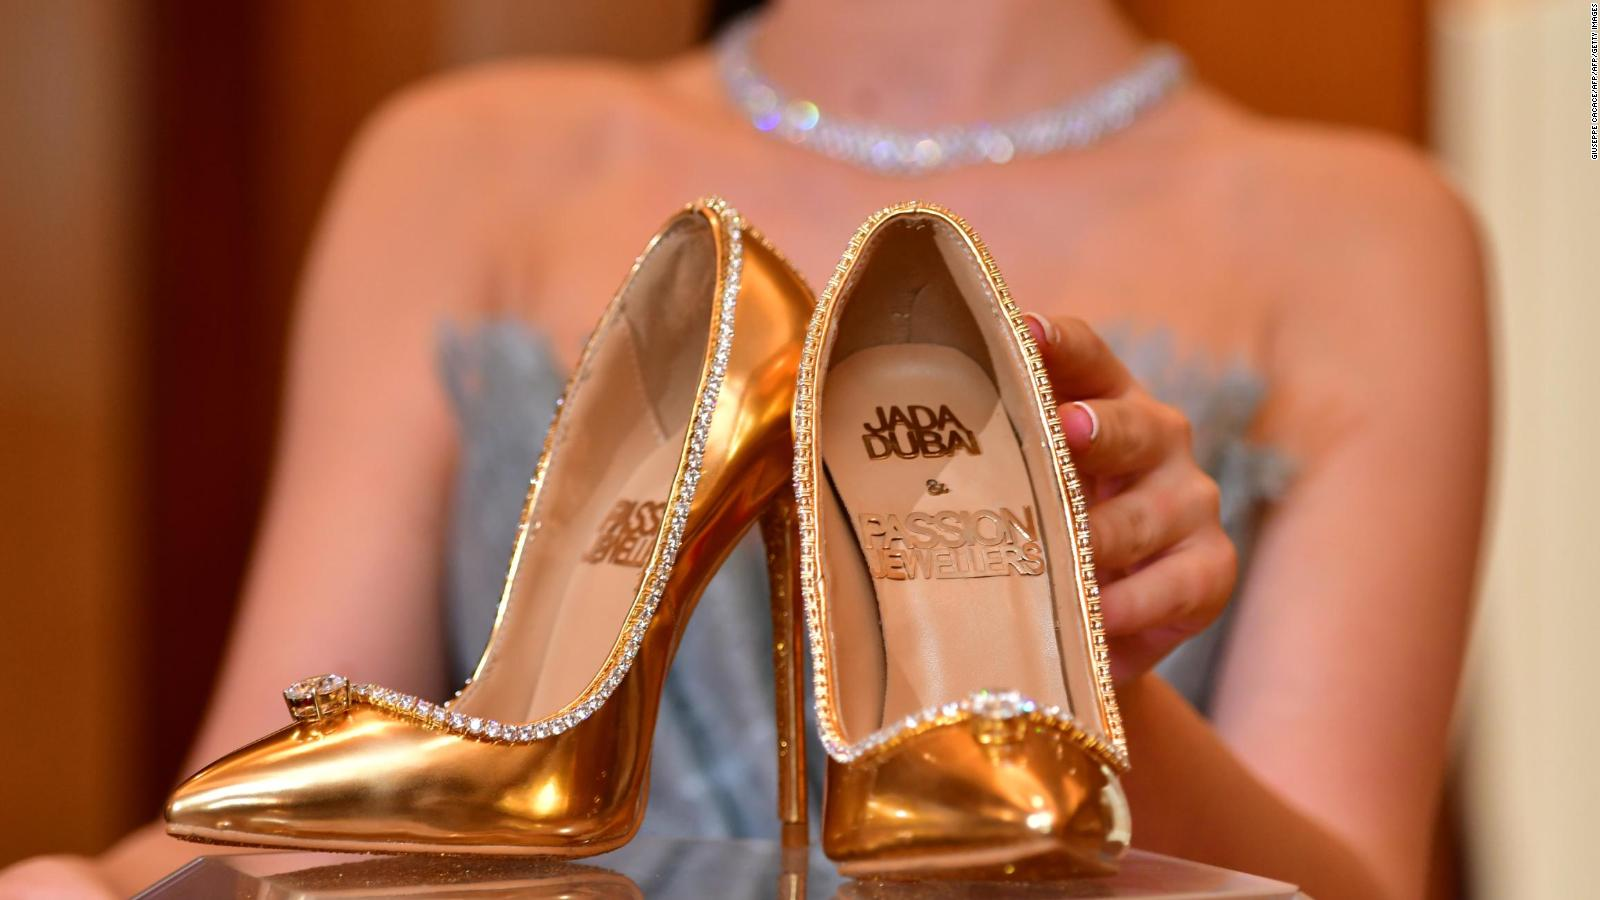 af9098a4333 These shoes cost  17 million - CNN Video